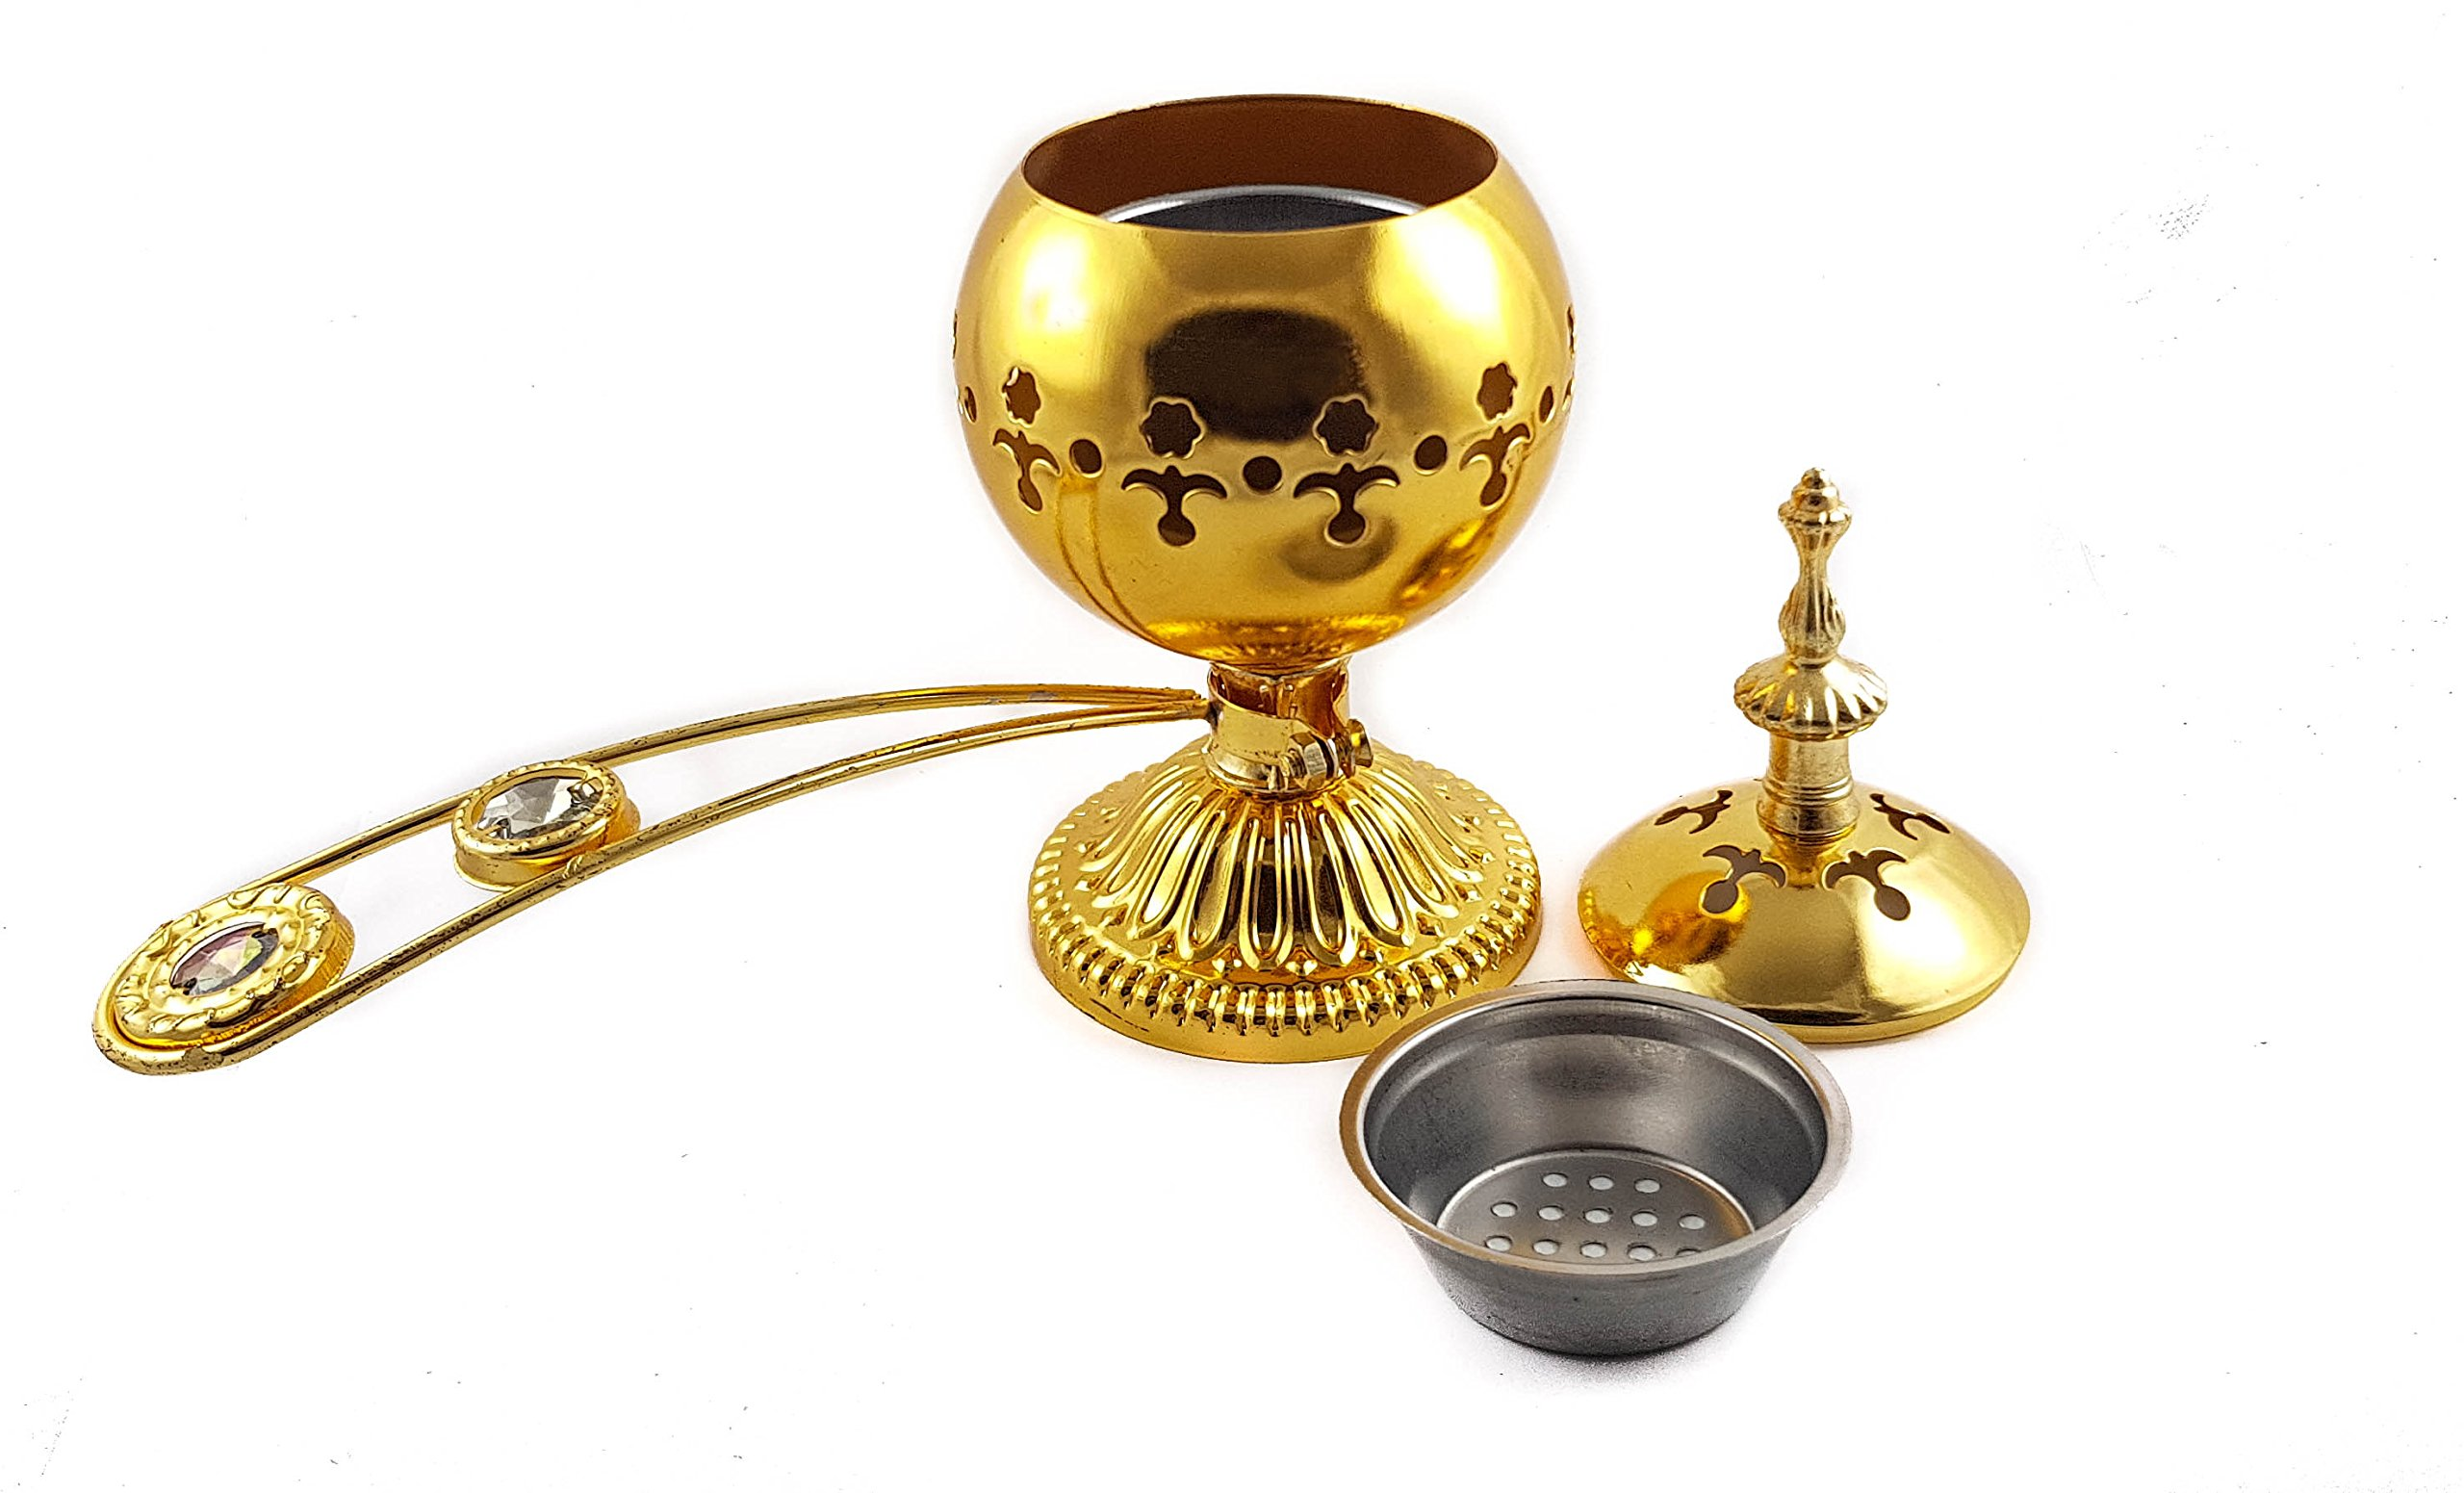 Nazareth Store Gold Copper Charcoal Incense Burner with Handle Censer Brass Plated Distiller for Church & Home Use by Nazareth Store